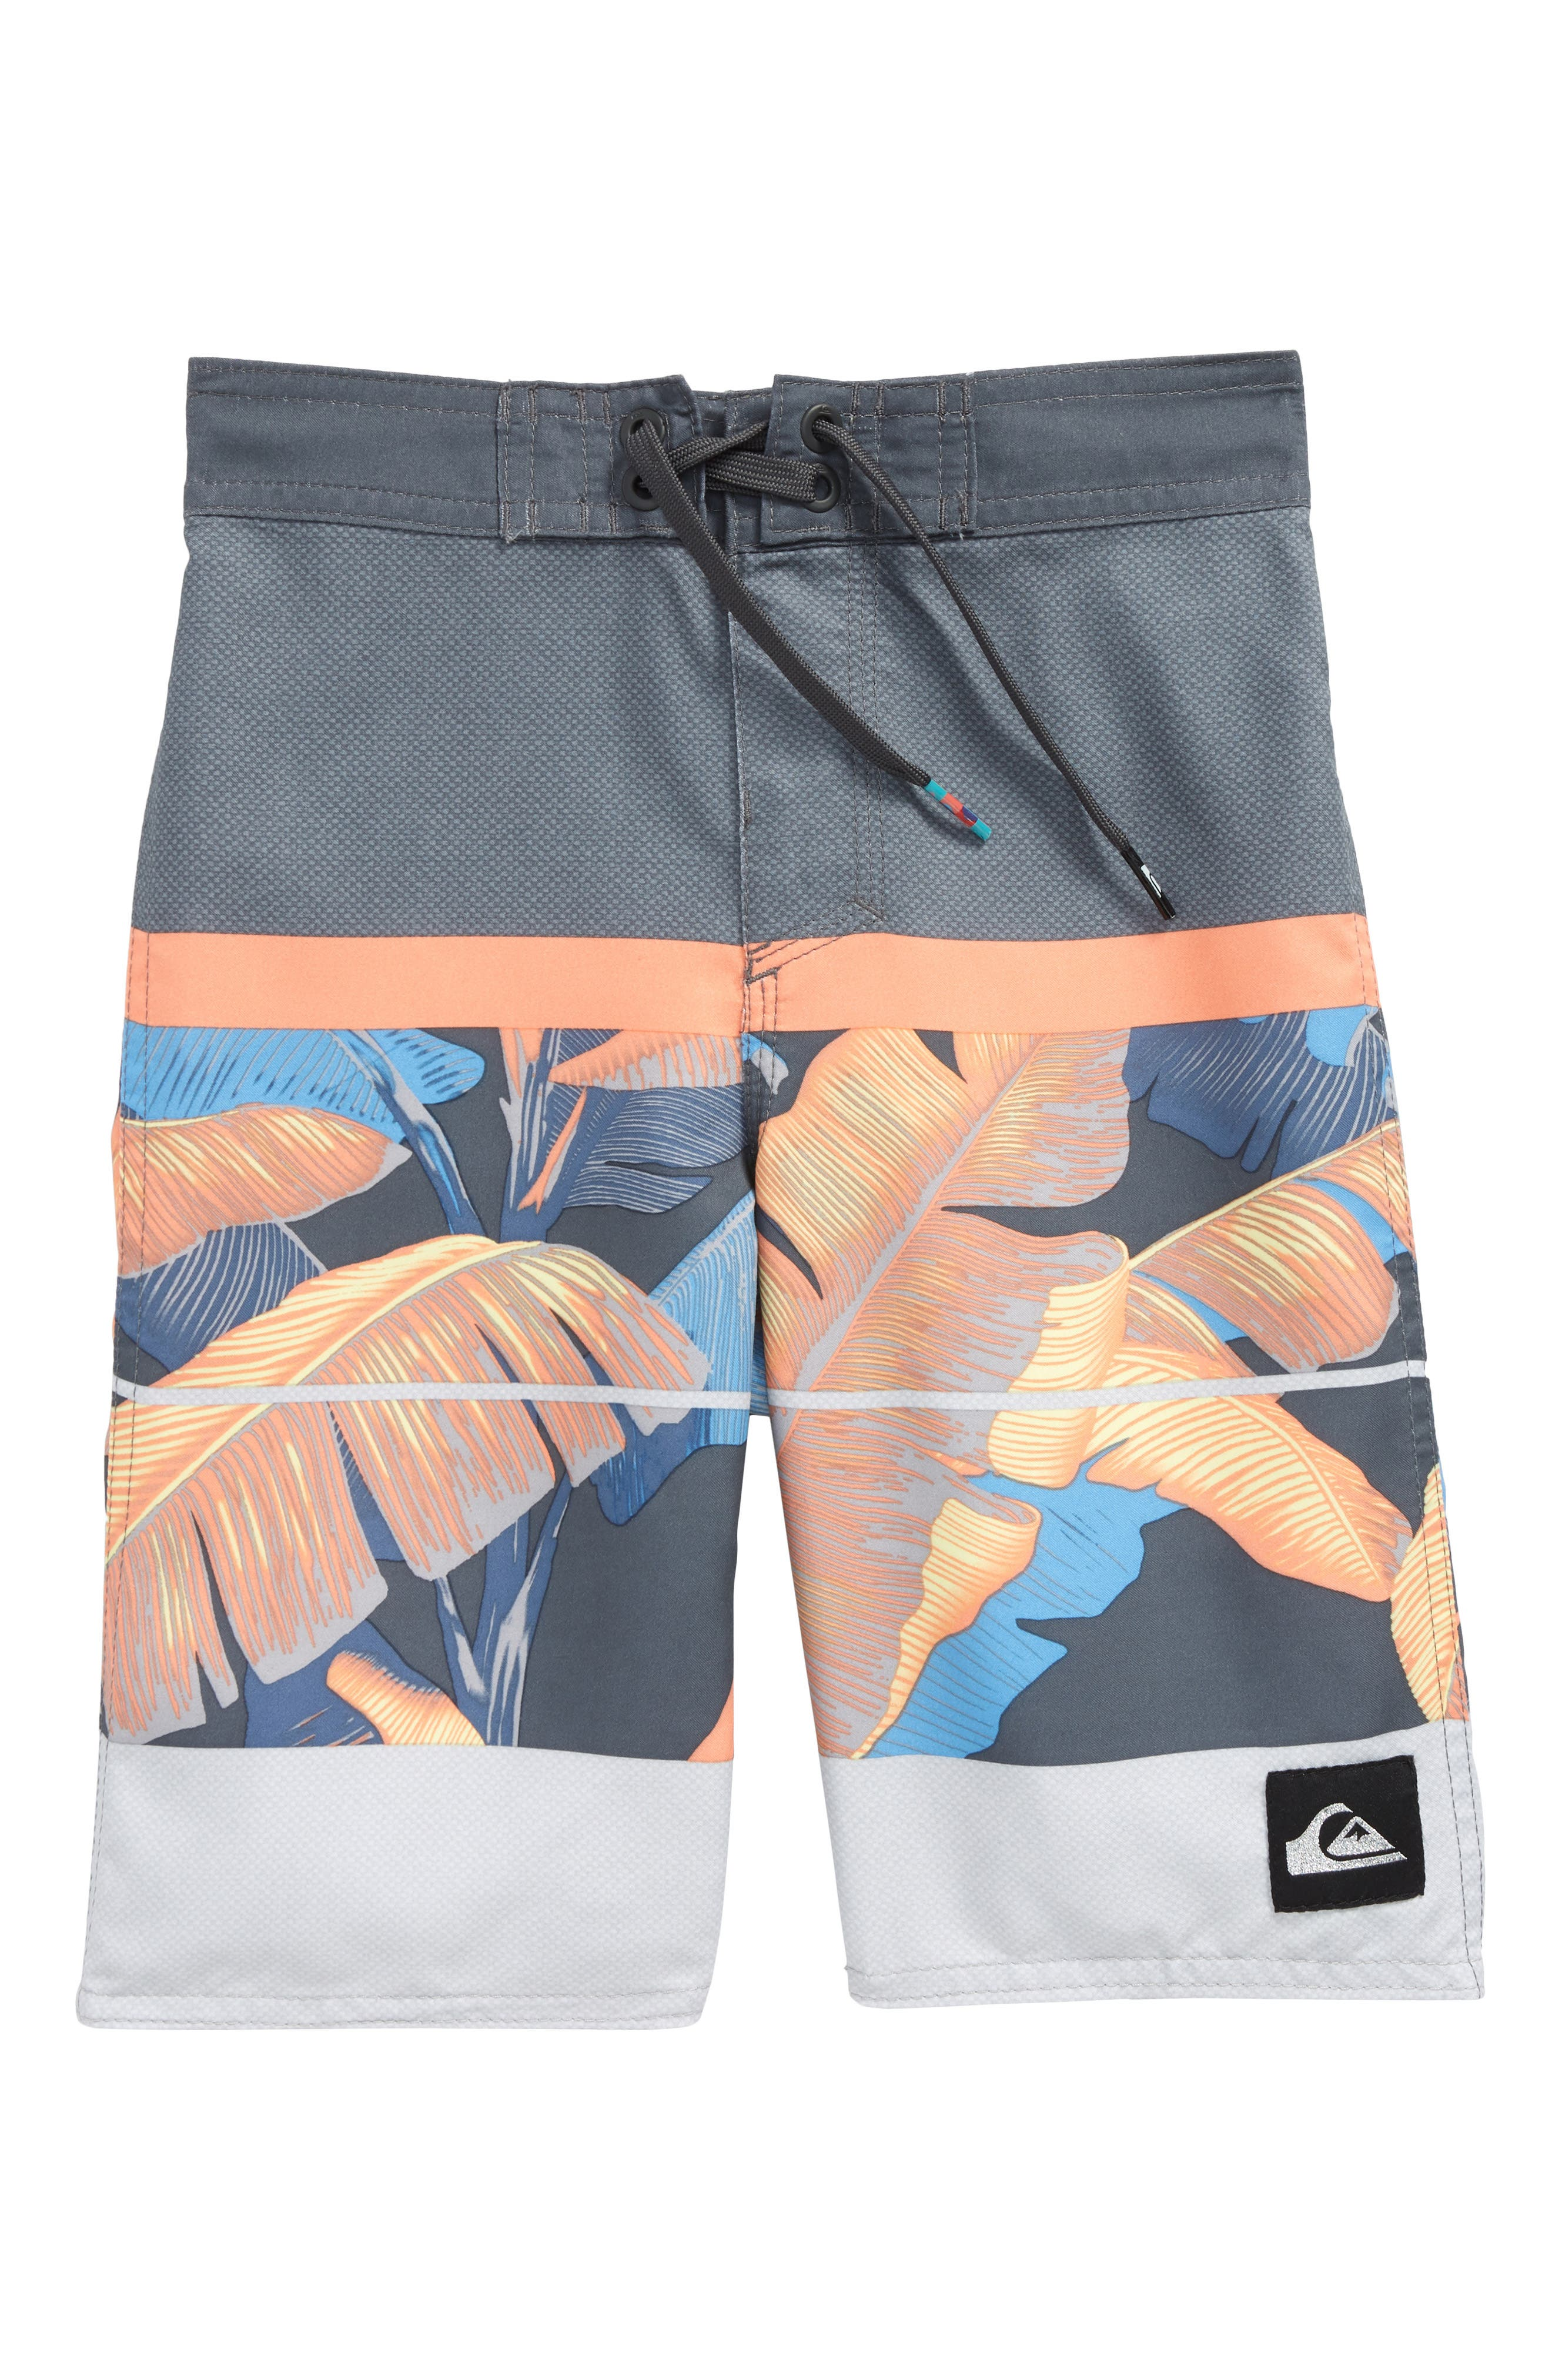 Alternate Image 1 Selected - Quiksilver Slab Island Board Shorts (Toddler Boys & Little Boys)